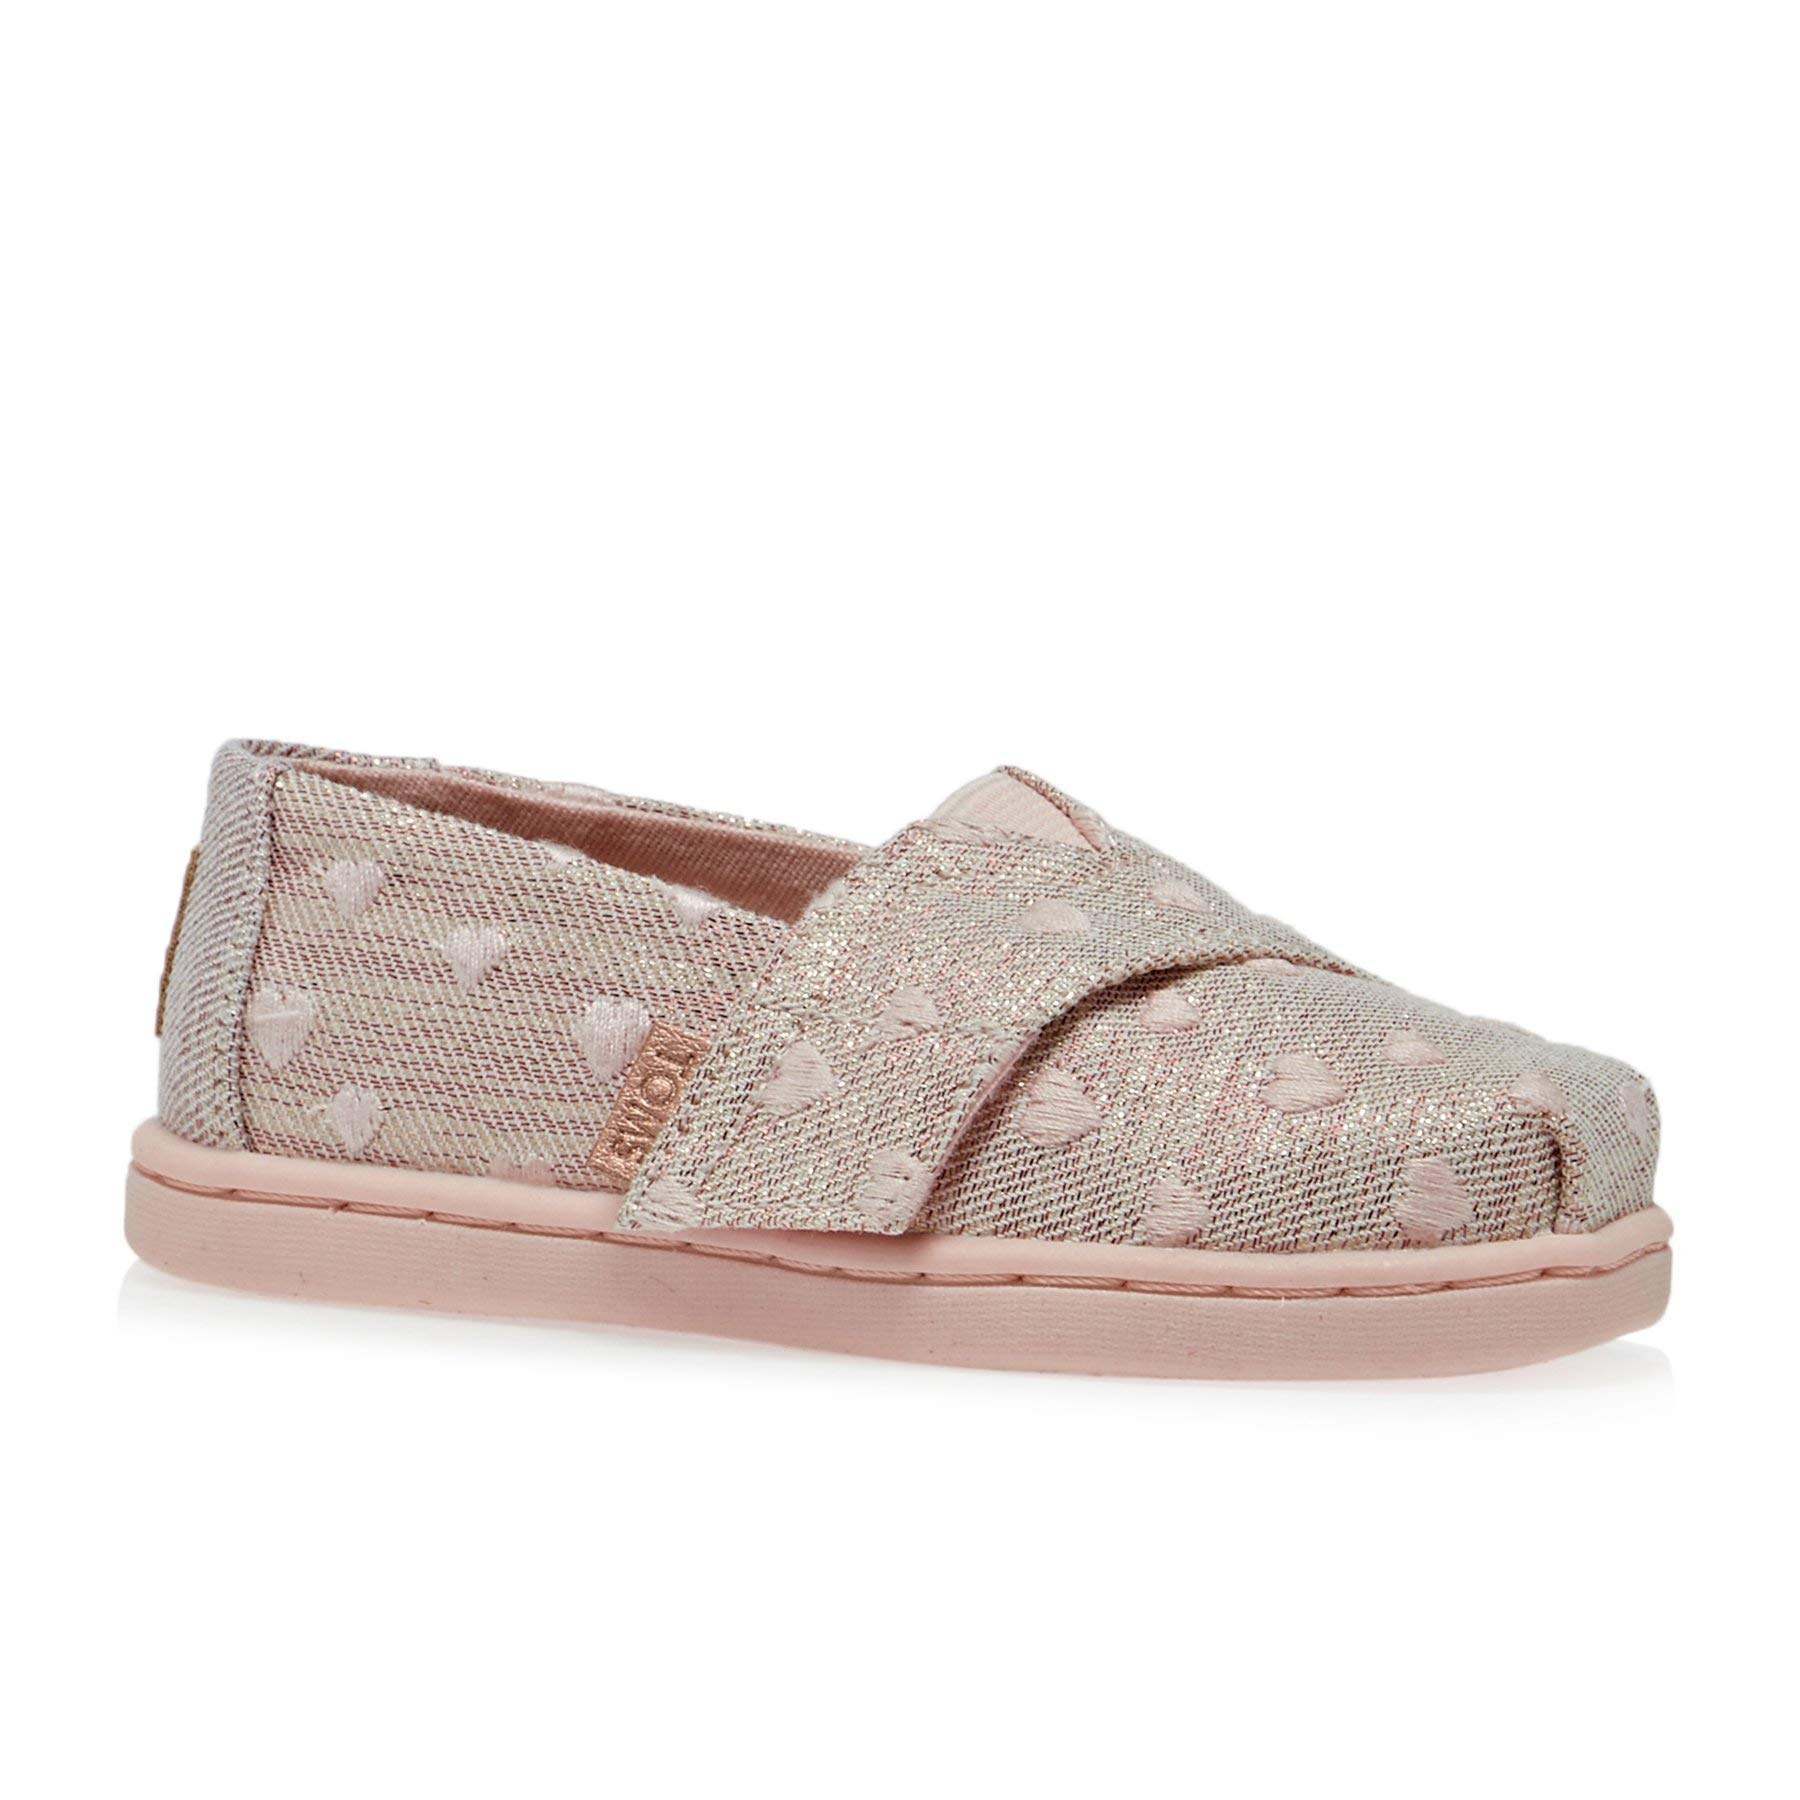 TOMS Kids Baby Girl's Alpargata (Toddler/Little Kid) Rose Cloud Heartsy Twill Glimmer Embroidery 11 M US Little Kid